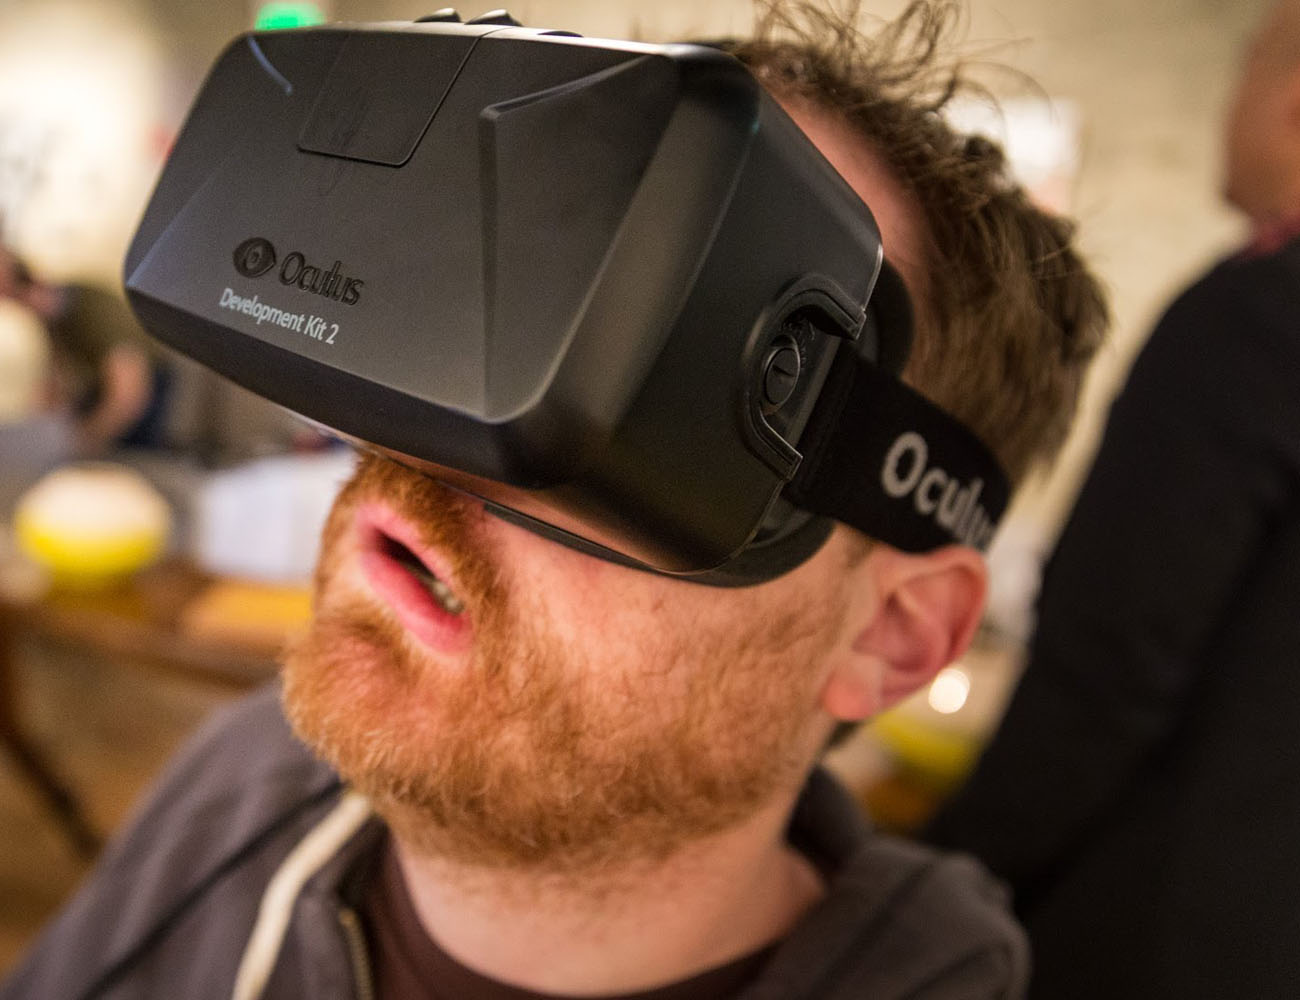 Oculus Rift Developers Kit